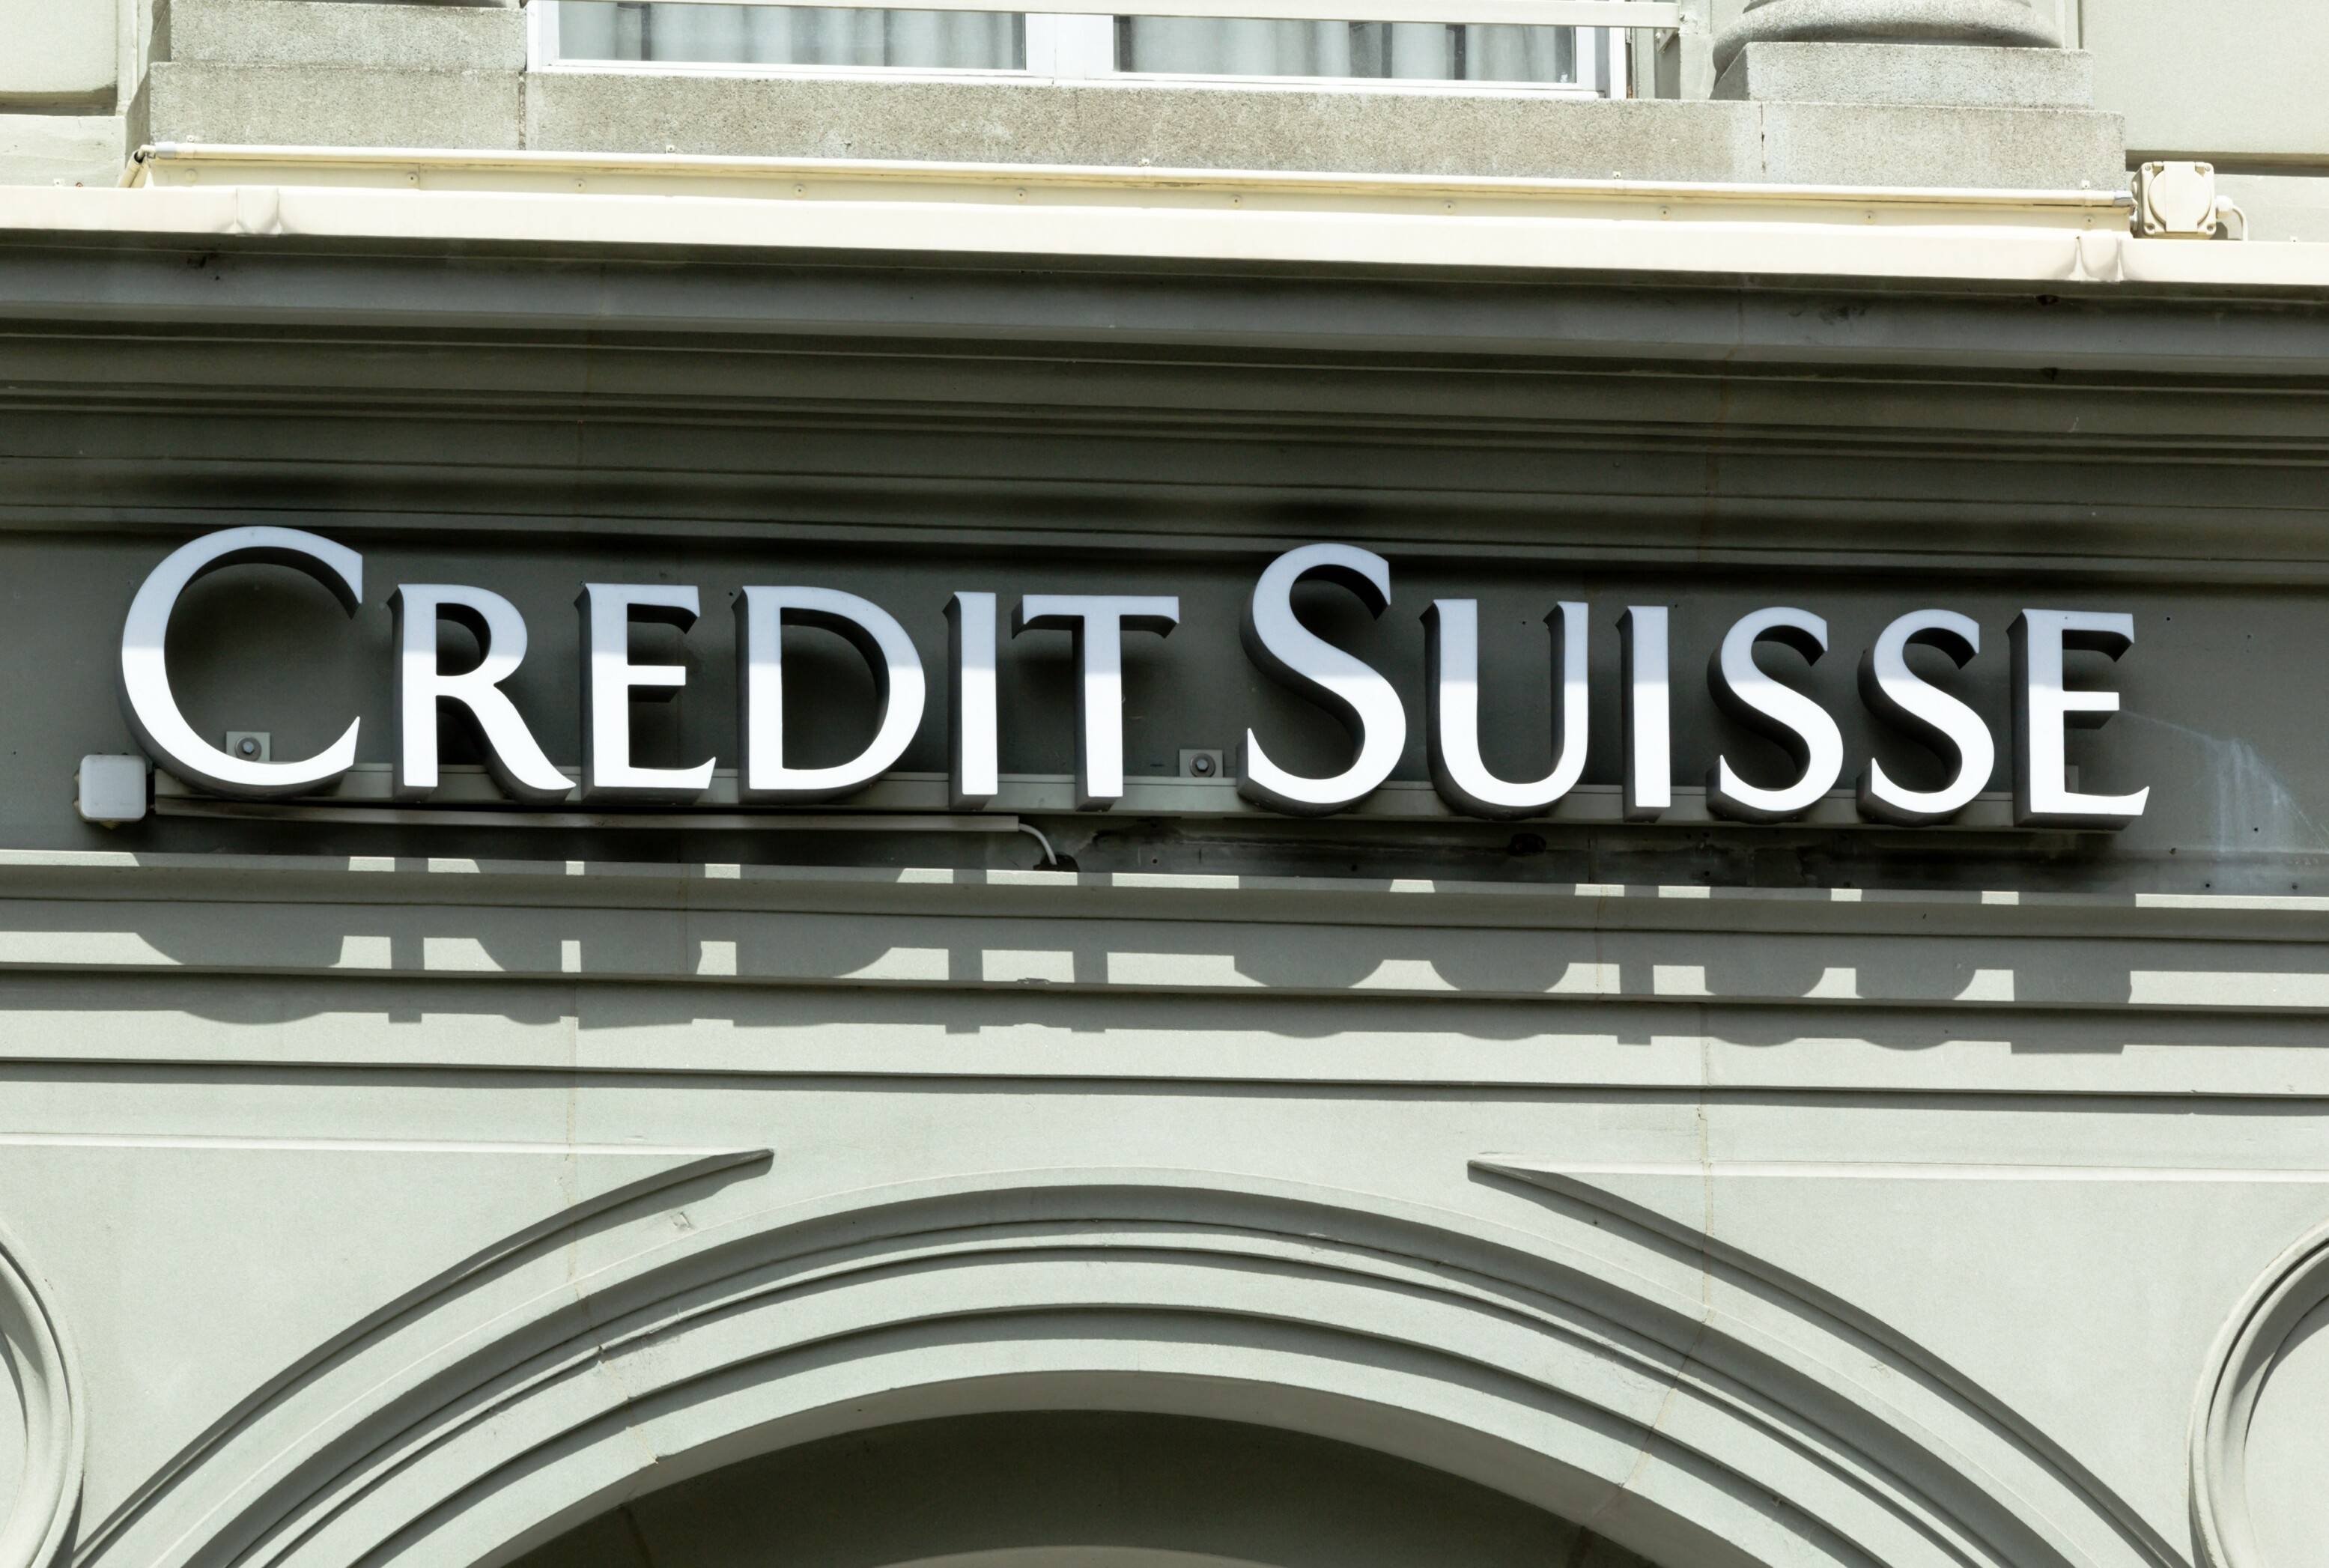 Credit Suisse set to delist UGAZ and DGAZ on the 12th of July- here is everything you need to know.